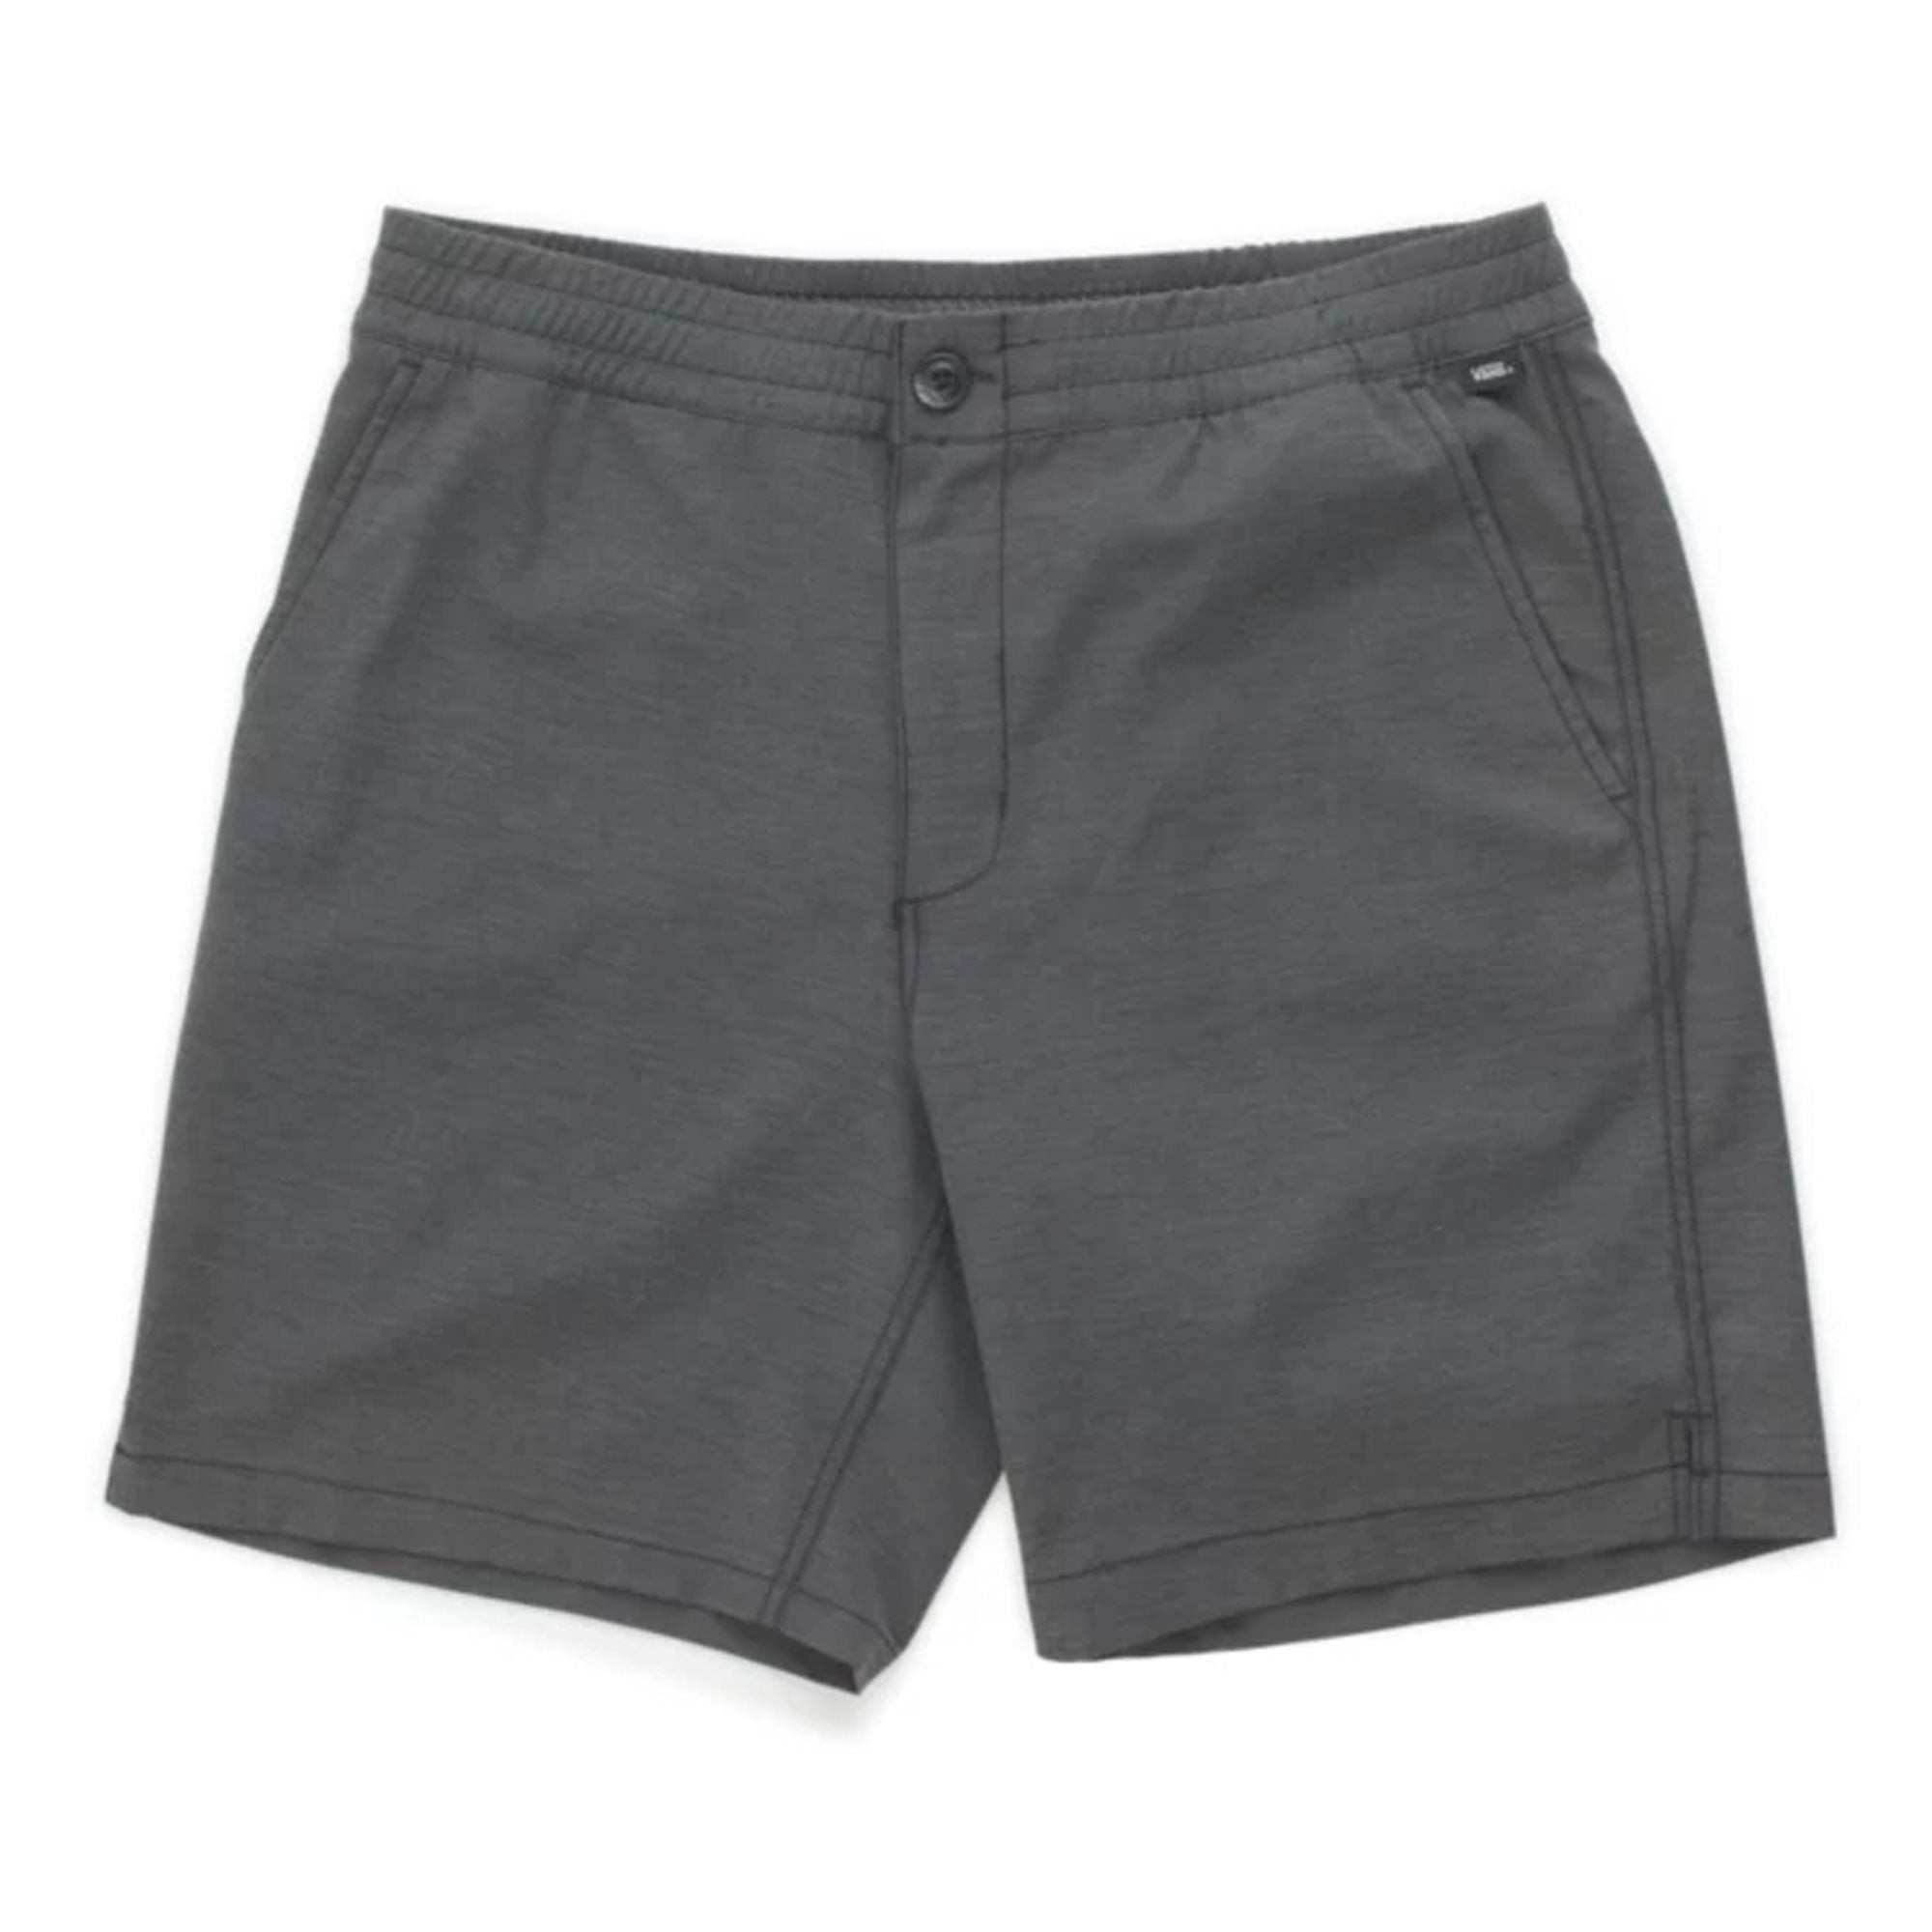 "Vans Microplush 18"" Men's Decksiders Short"